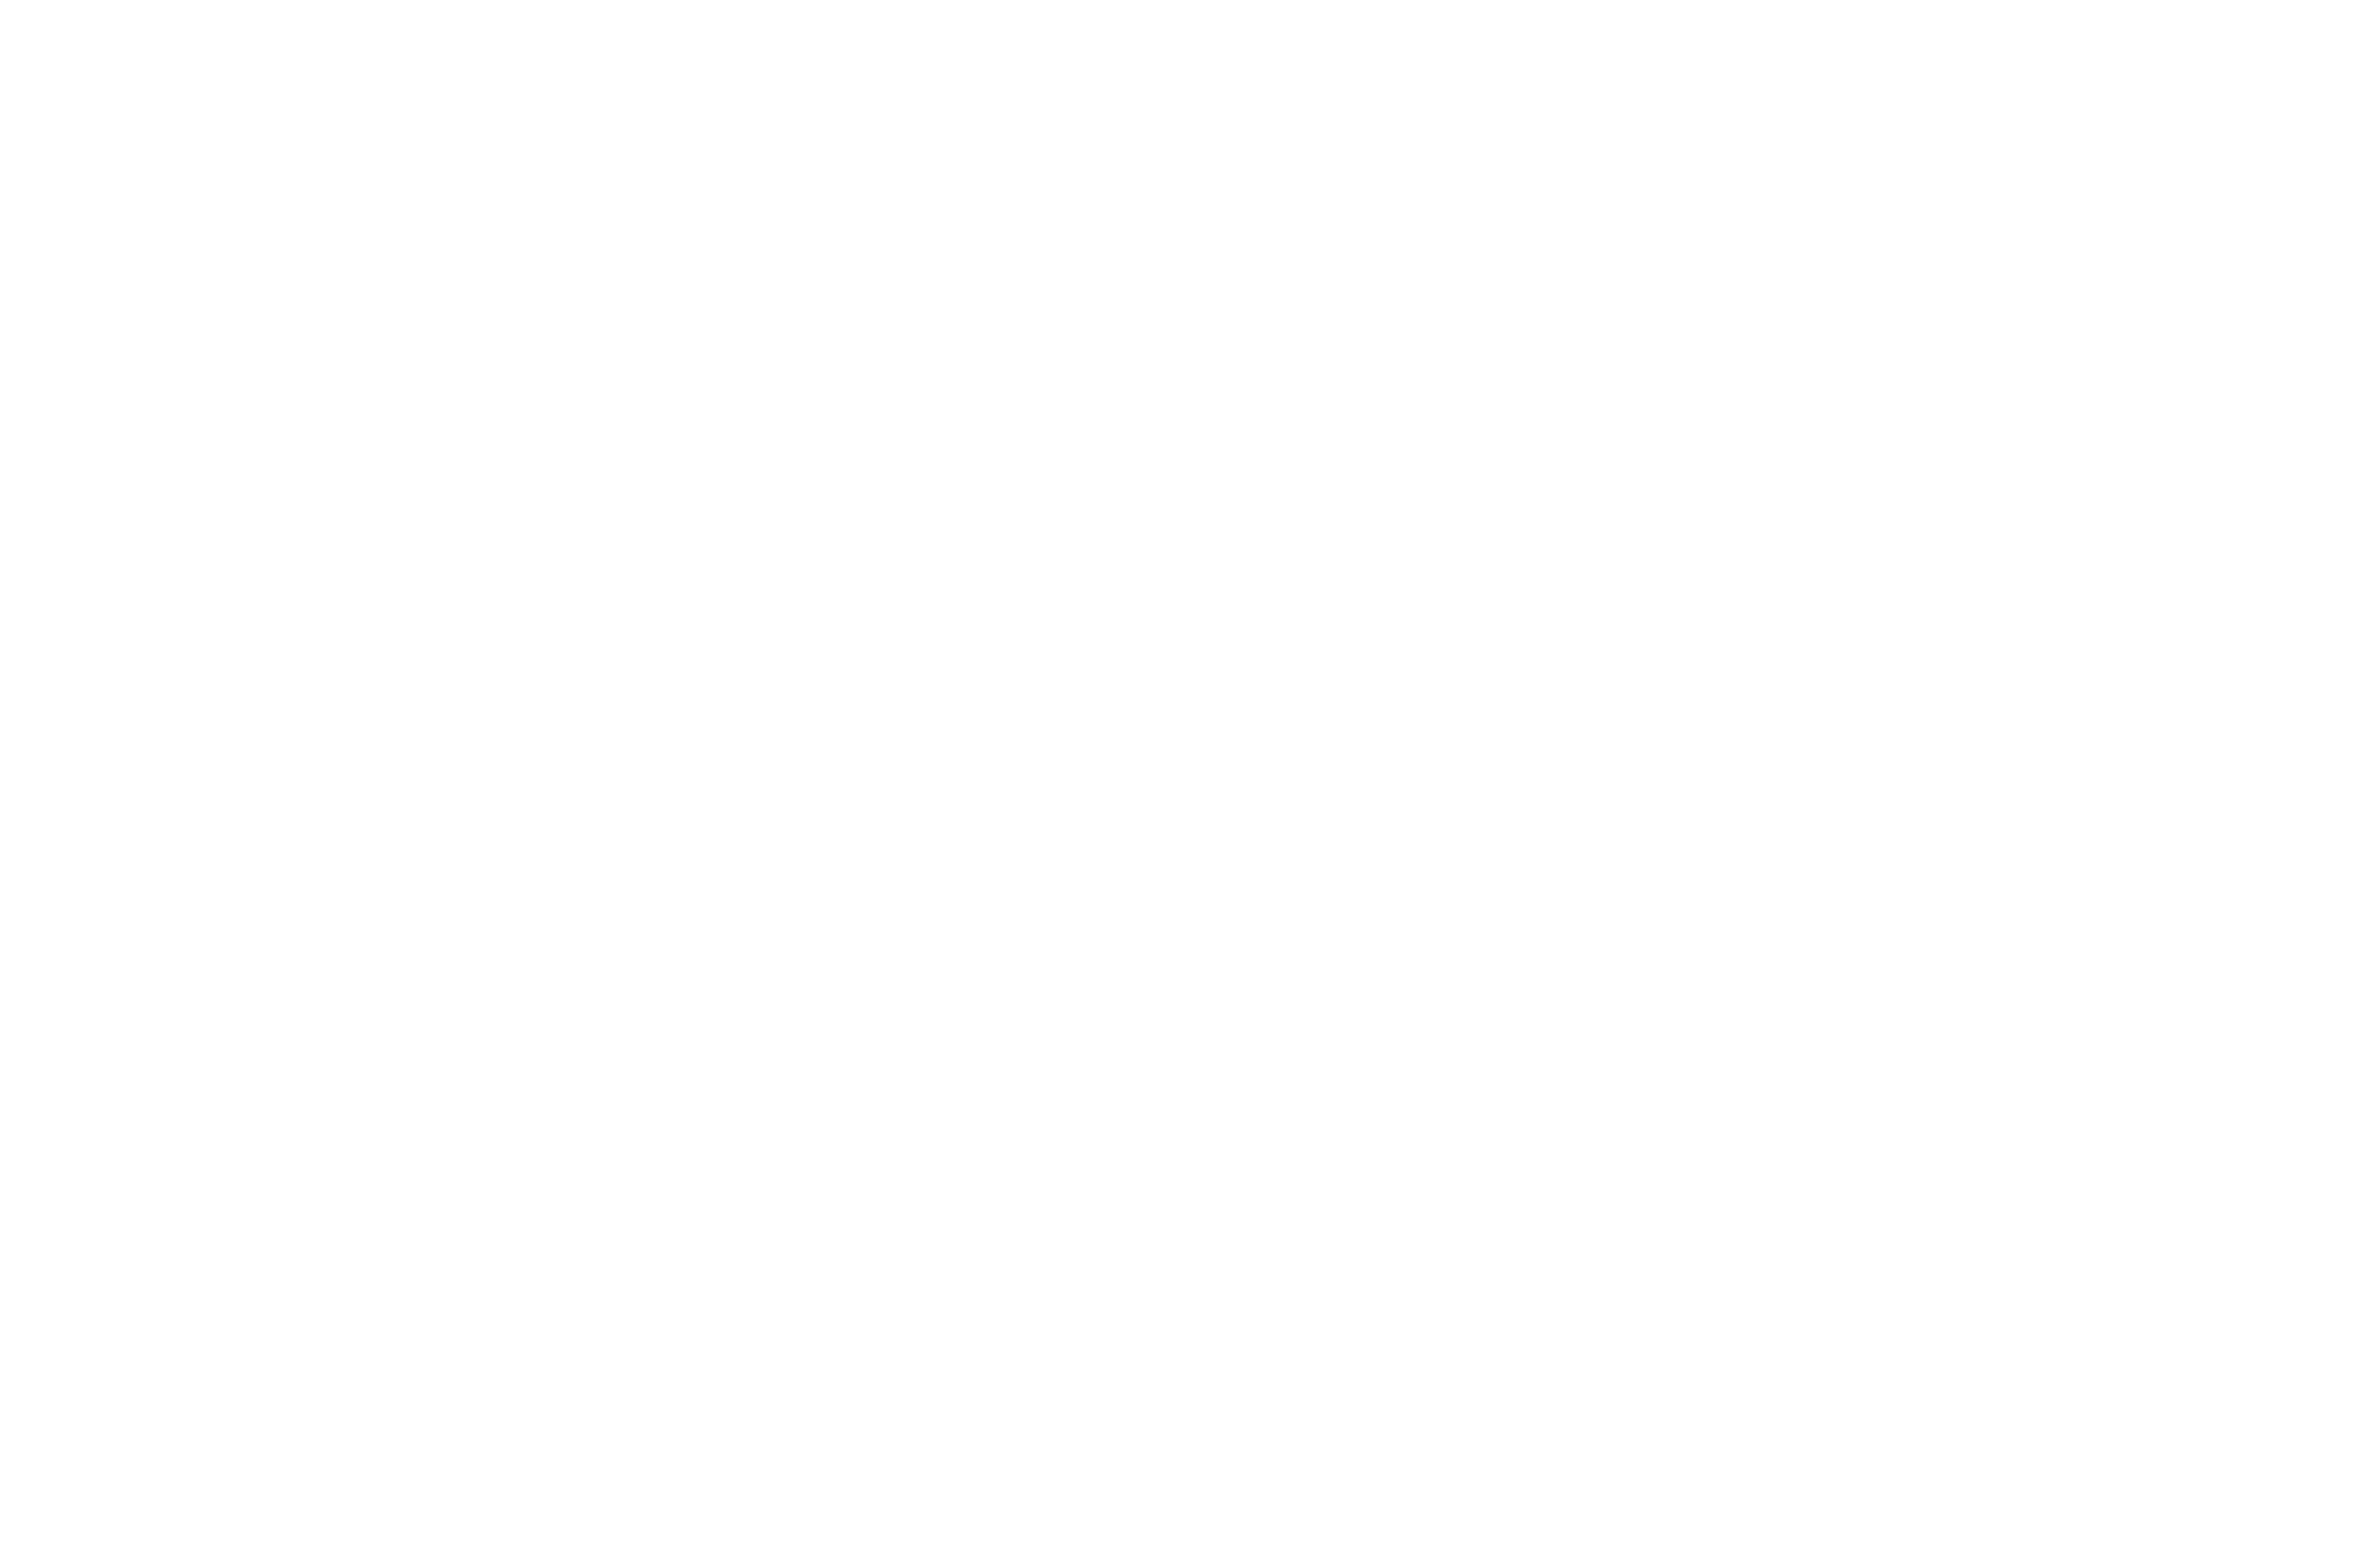 OFFICIALSELECTION-GeorgiaLatinoFilmFestival-2017.png